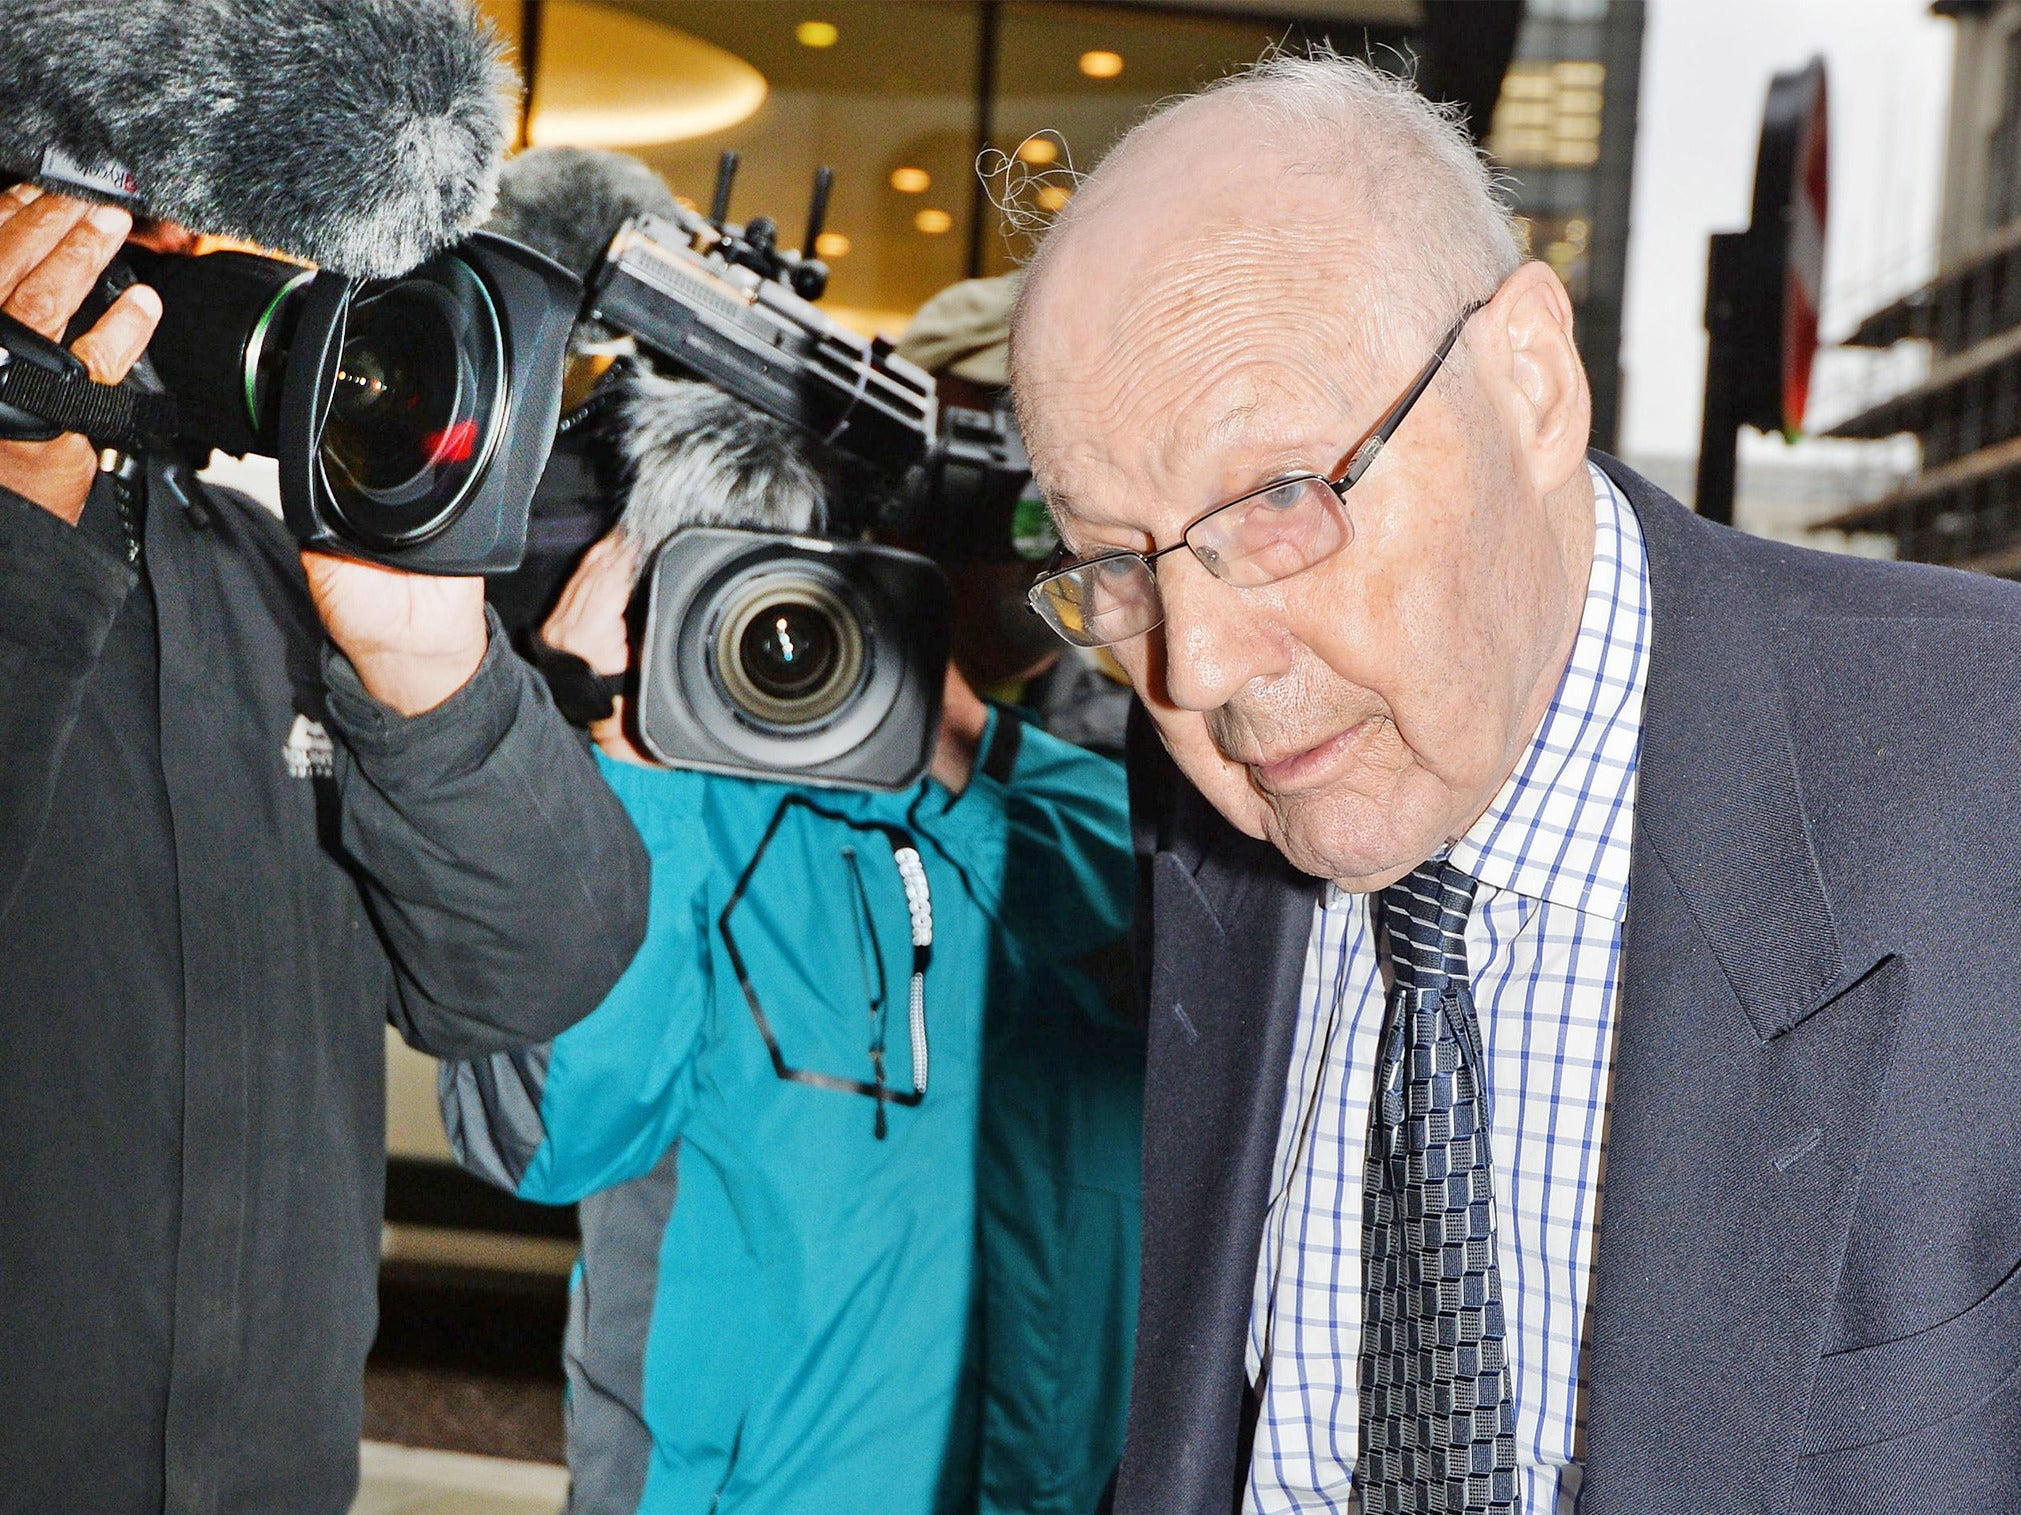 Former Archbishop of Canterbury showed 'compassion' for paedophile bishop but not his victims